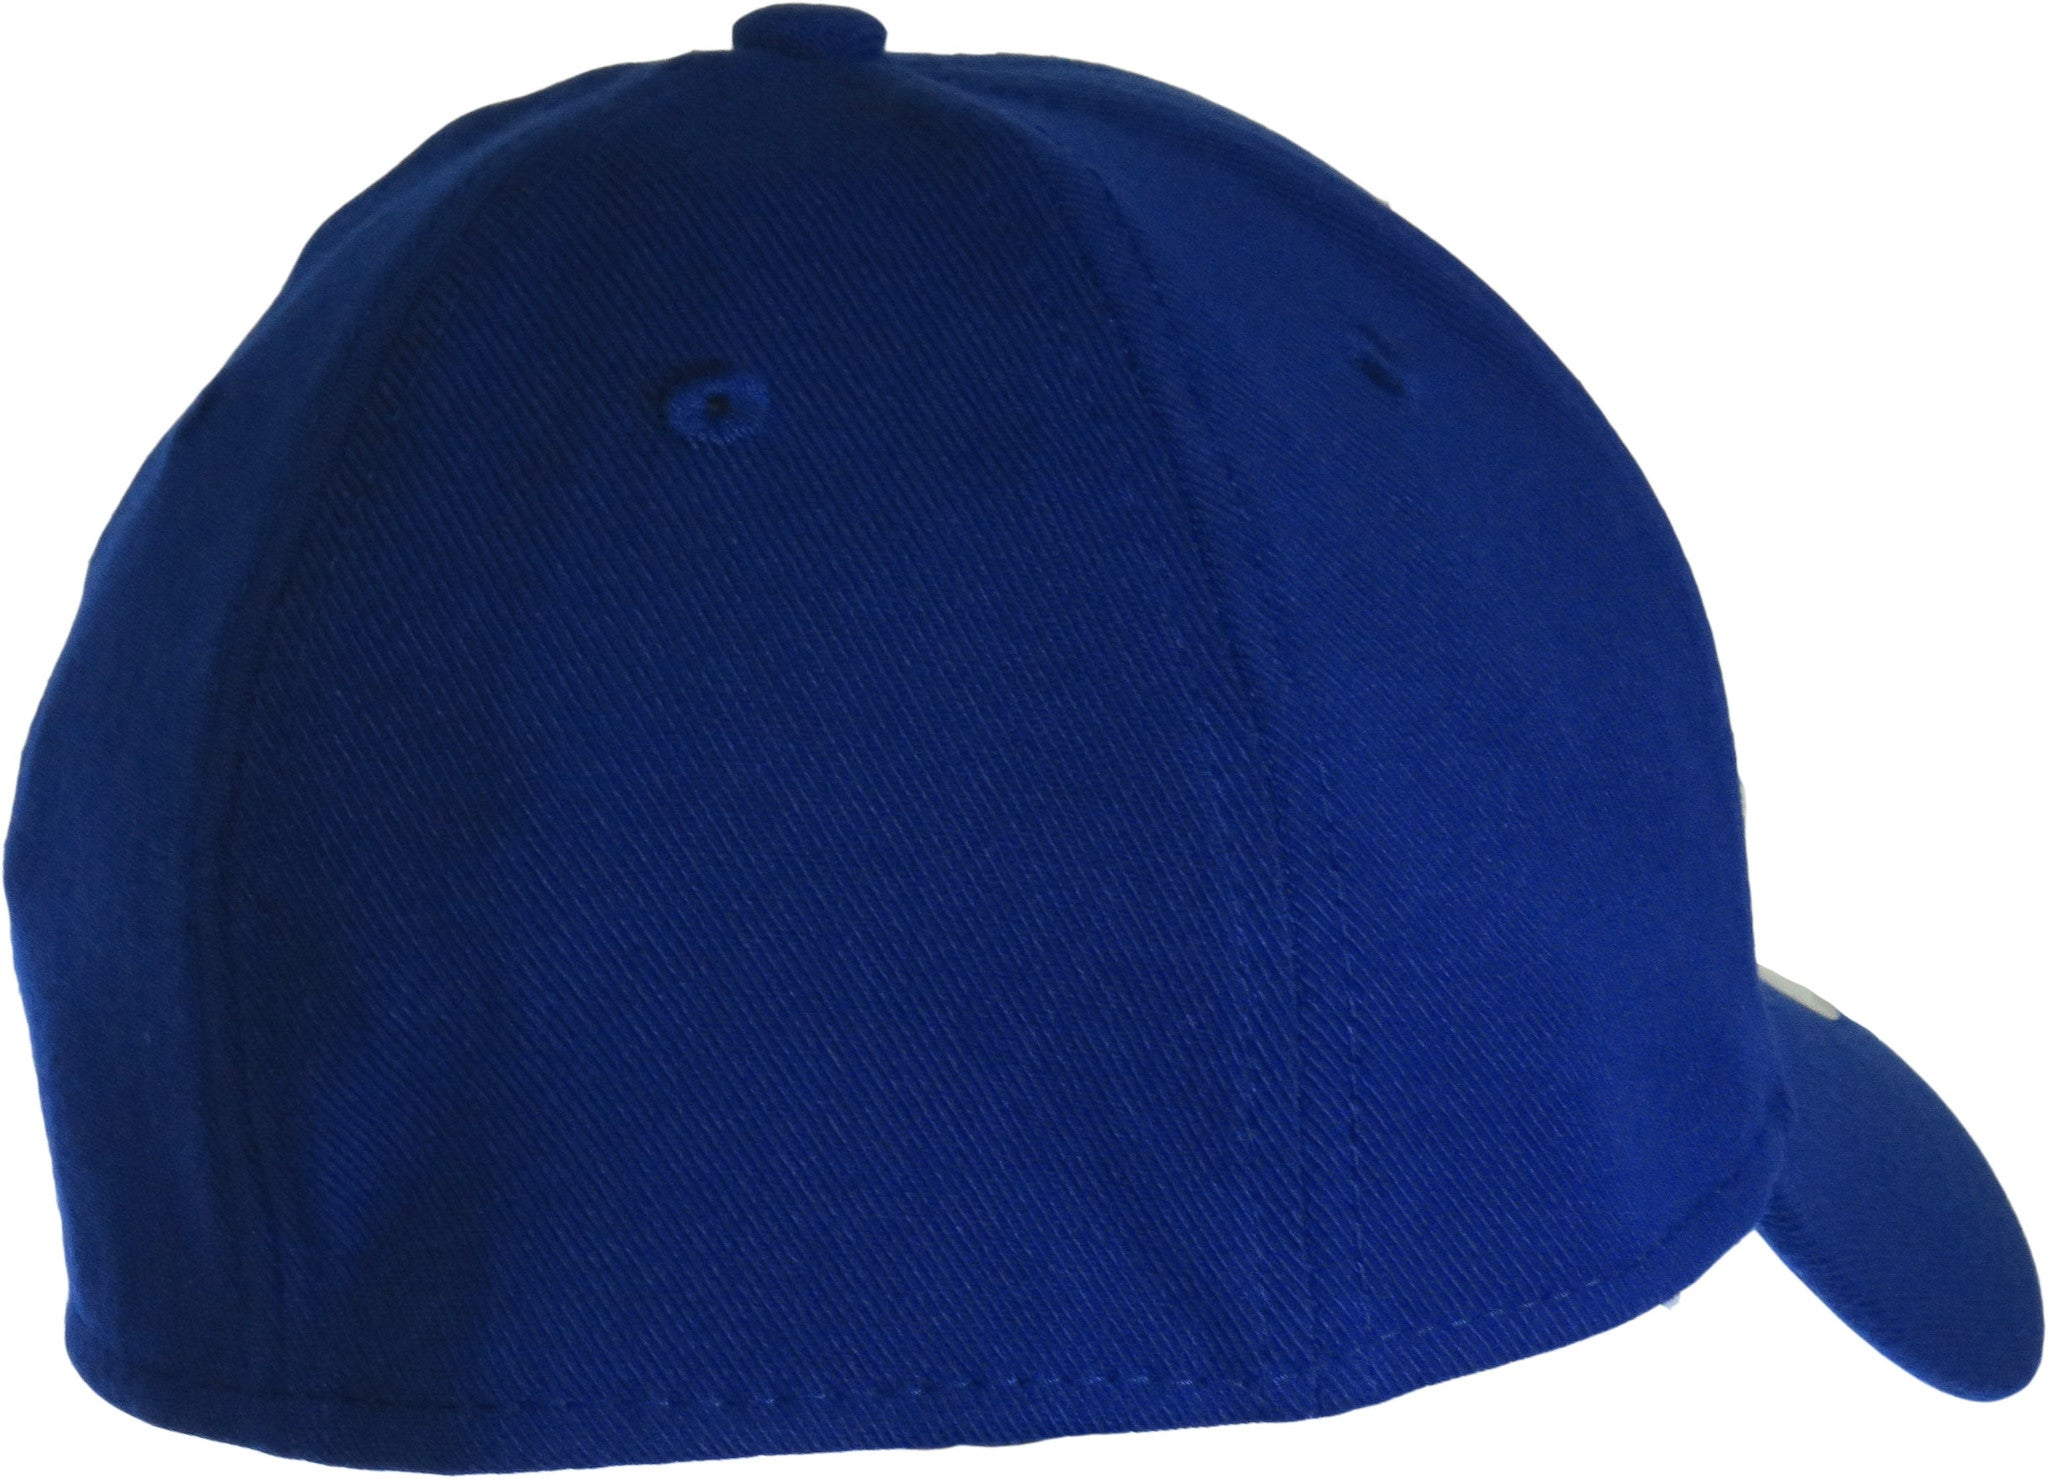 a0ee8d54882 ... New Era 3930 Classic Curved Peak Stretch Fit Plain Royal Blue Baseball  Cap - pumpheadgear